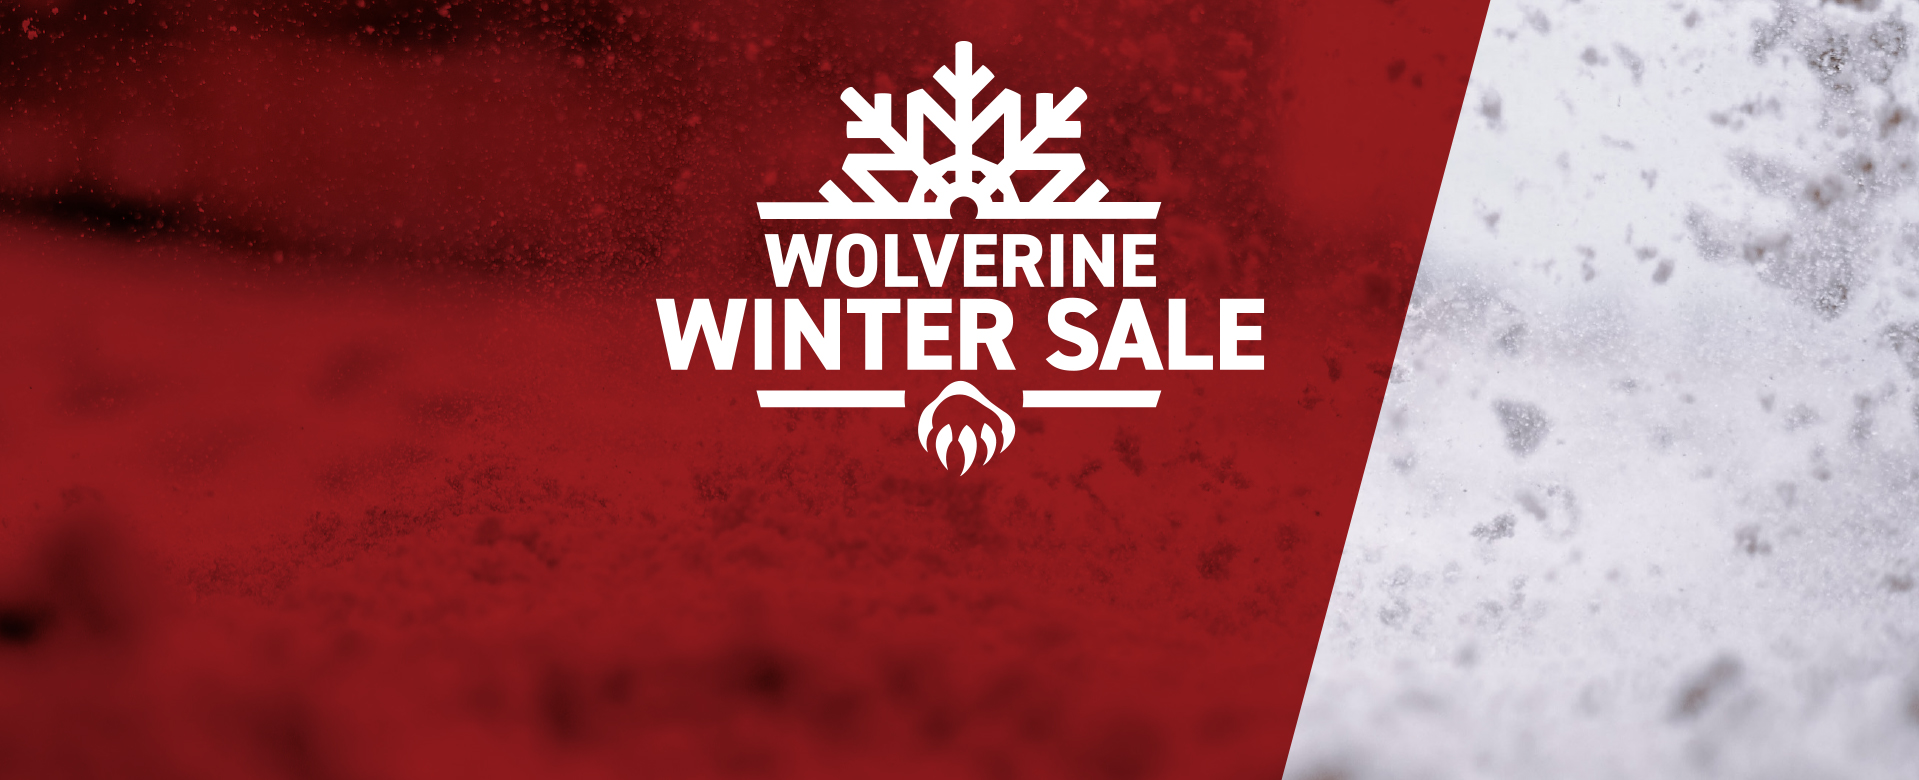 Wolverine winter sale.